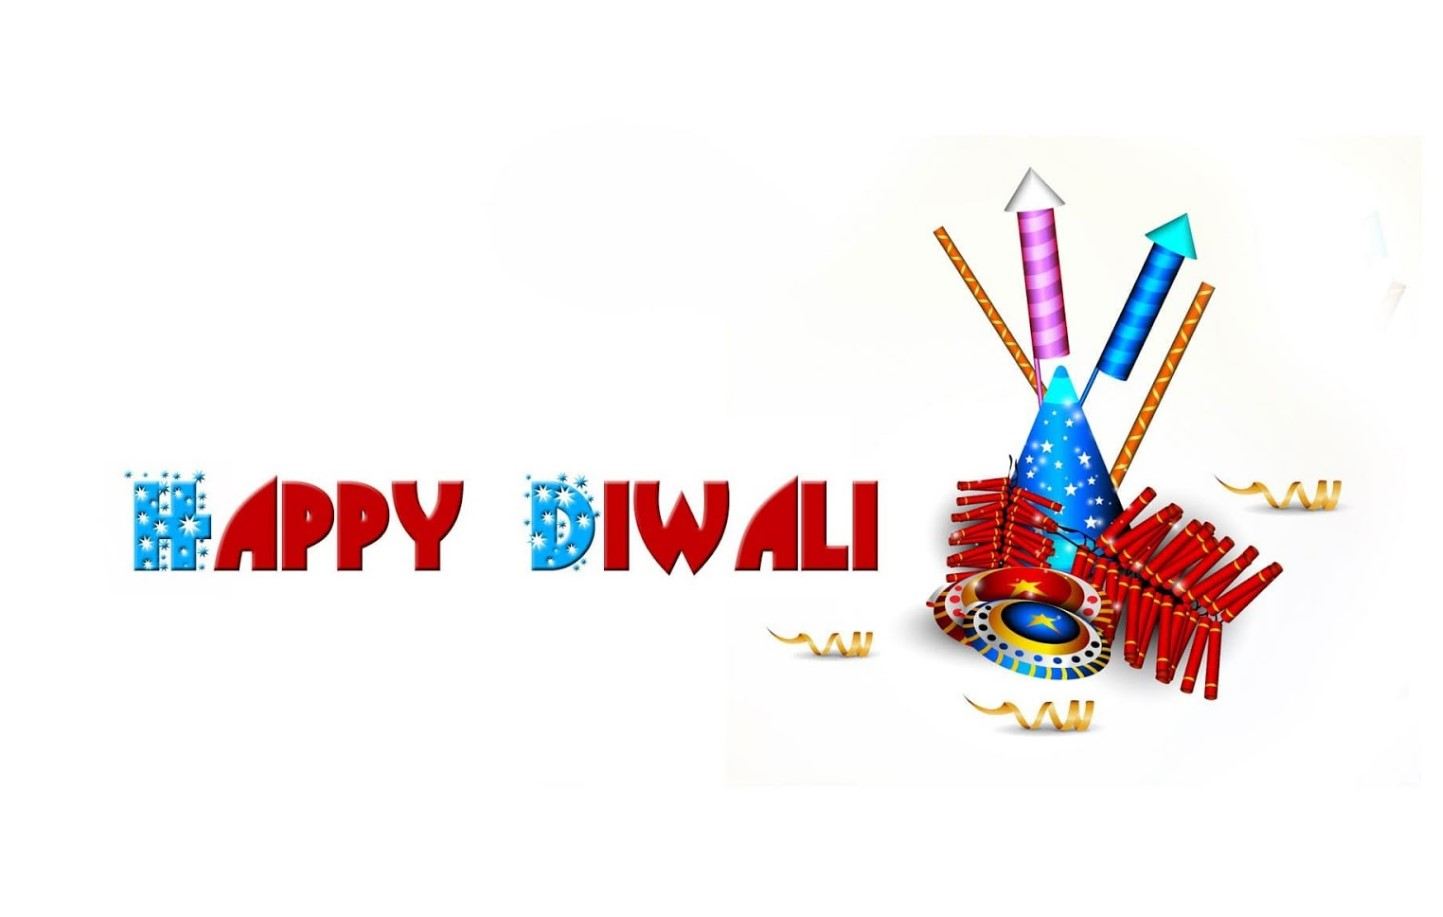 Happy Diwali Crackers Image Wishes